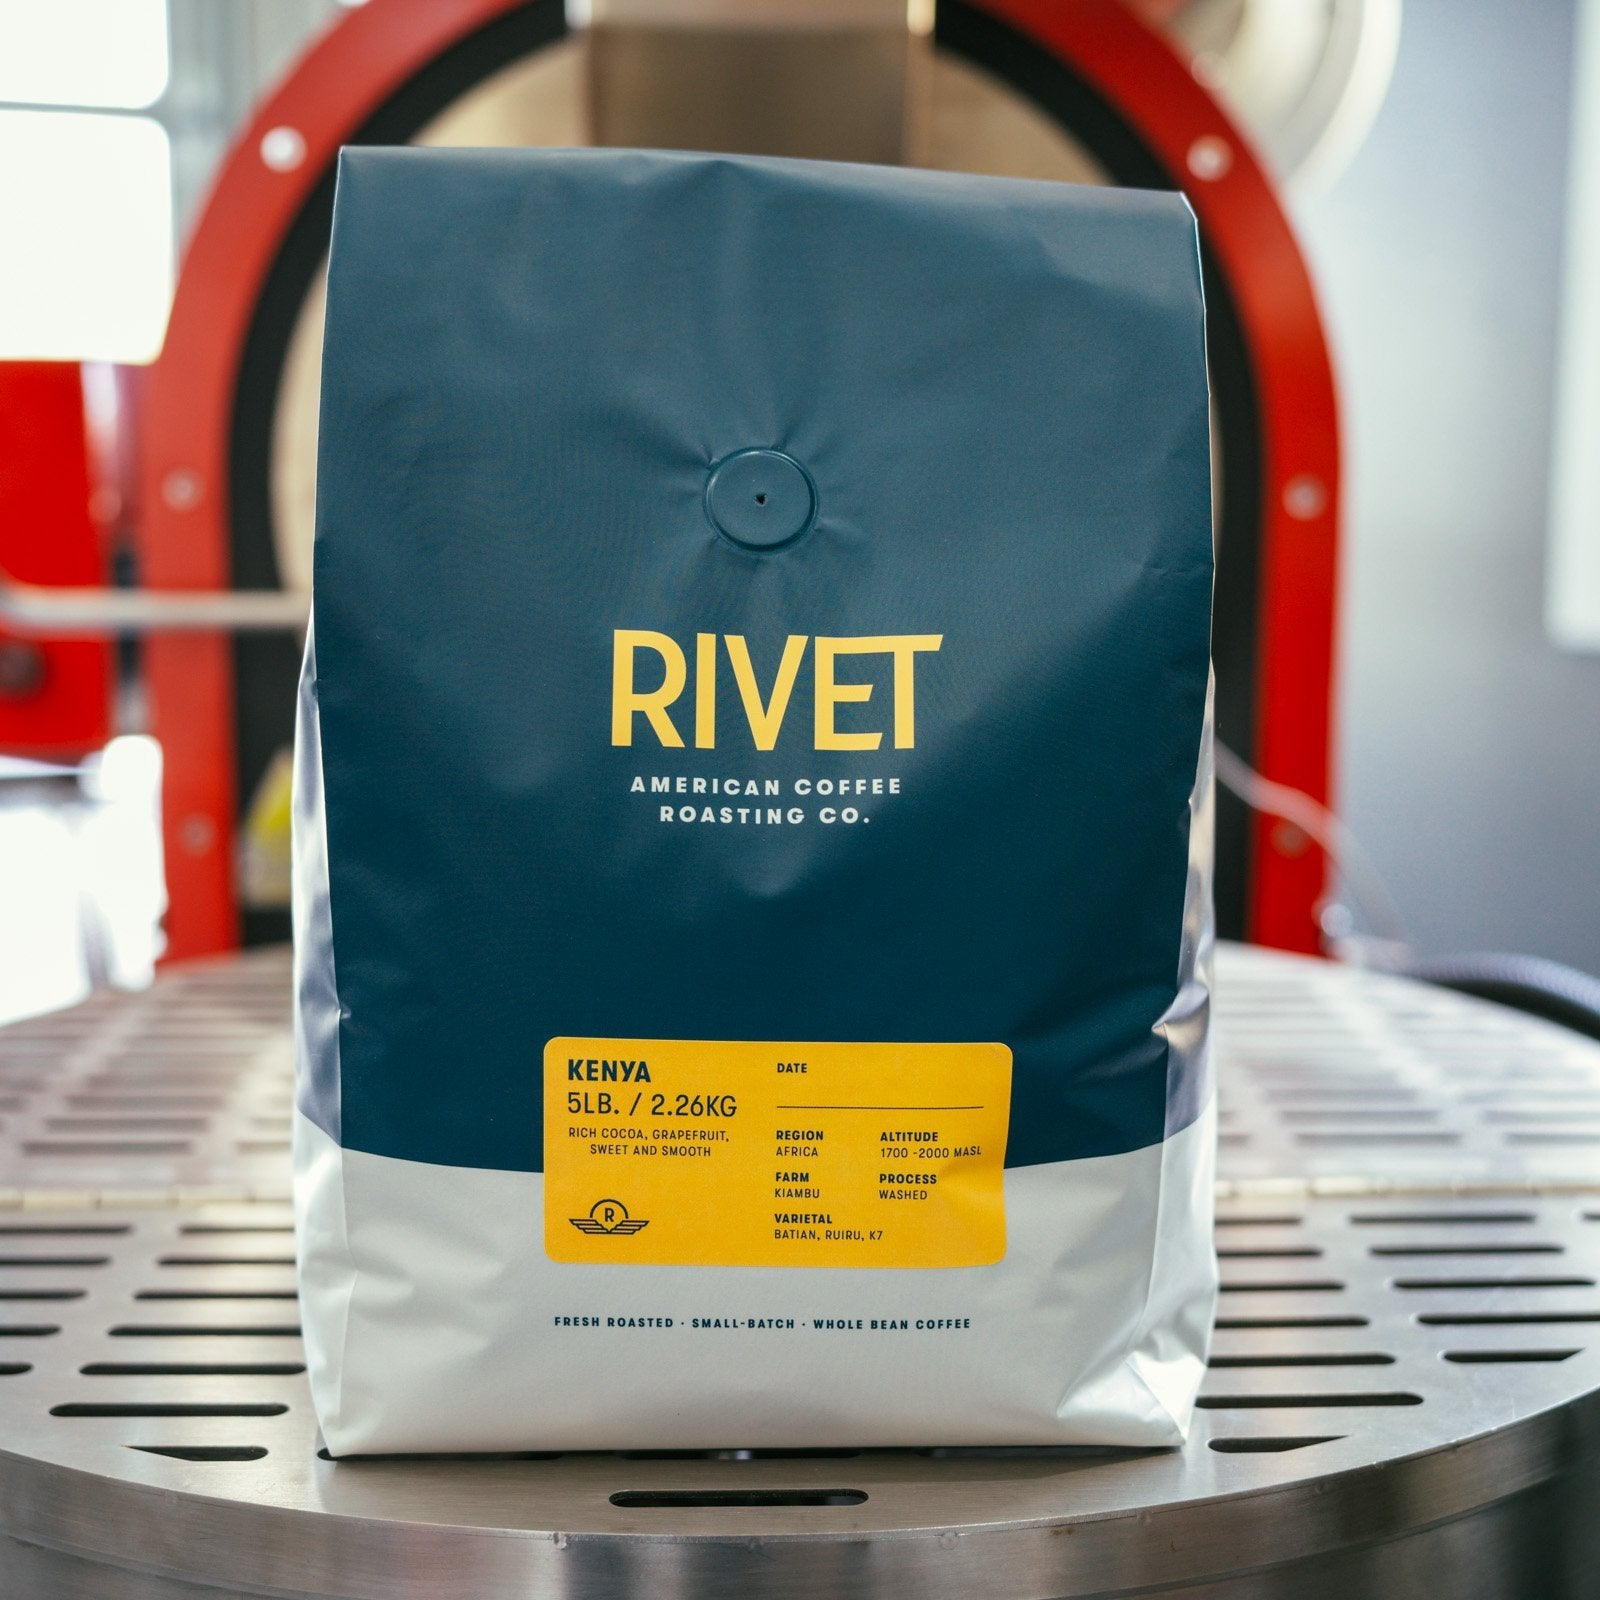 Kiambu Microlot, Kenya AA Single Origin Coffee - RIVET Coffee